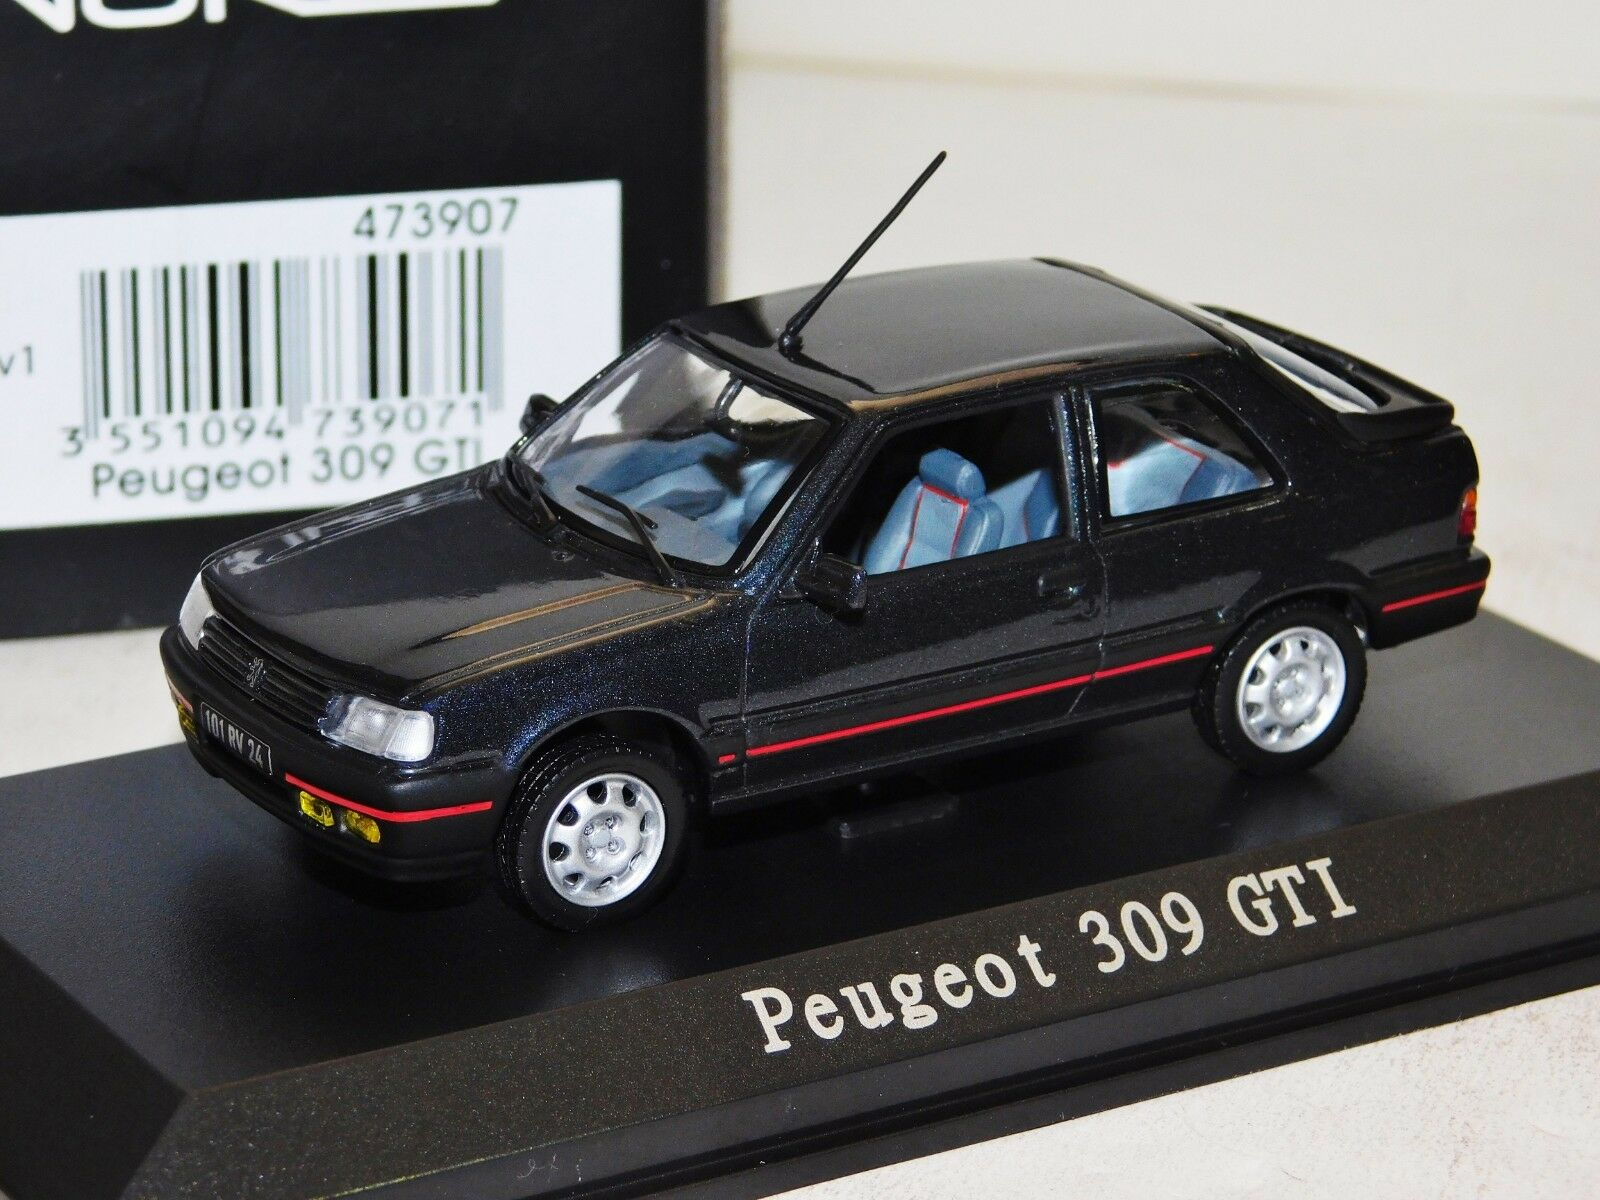 PEUGEOT 309 GTI DARK GREY METALLIC NOREV 473907 1 43